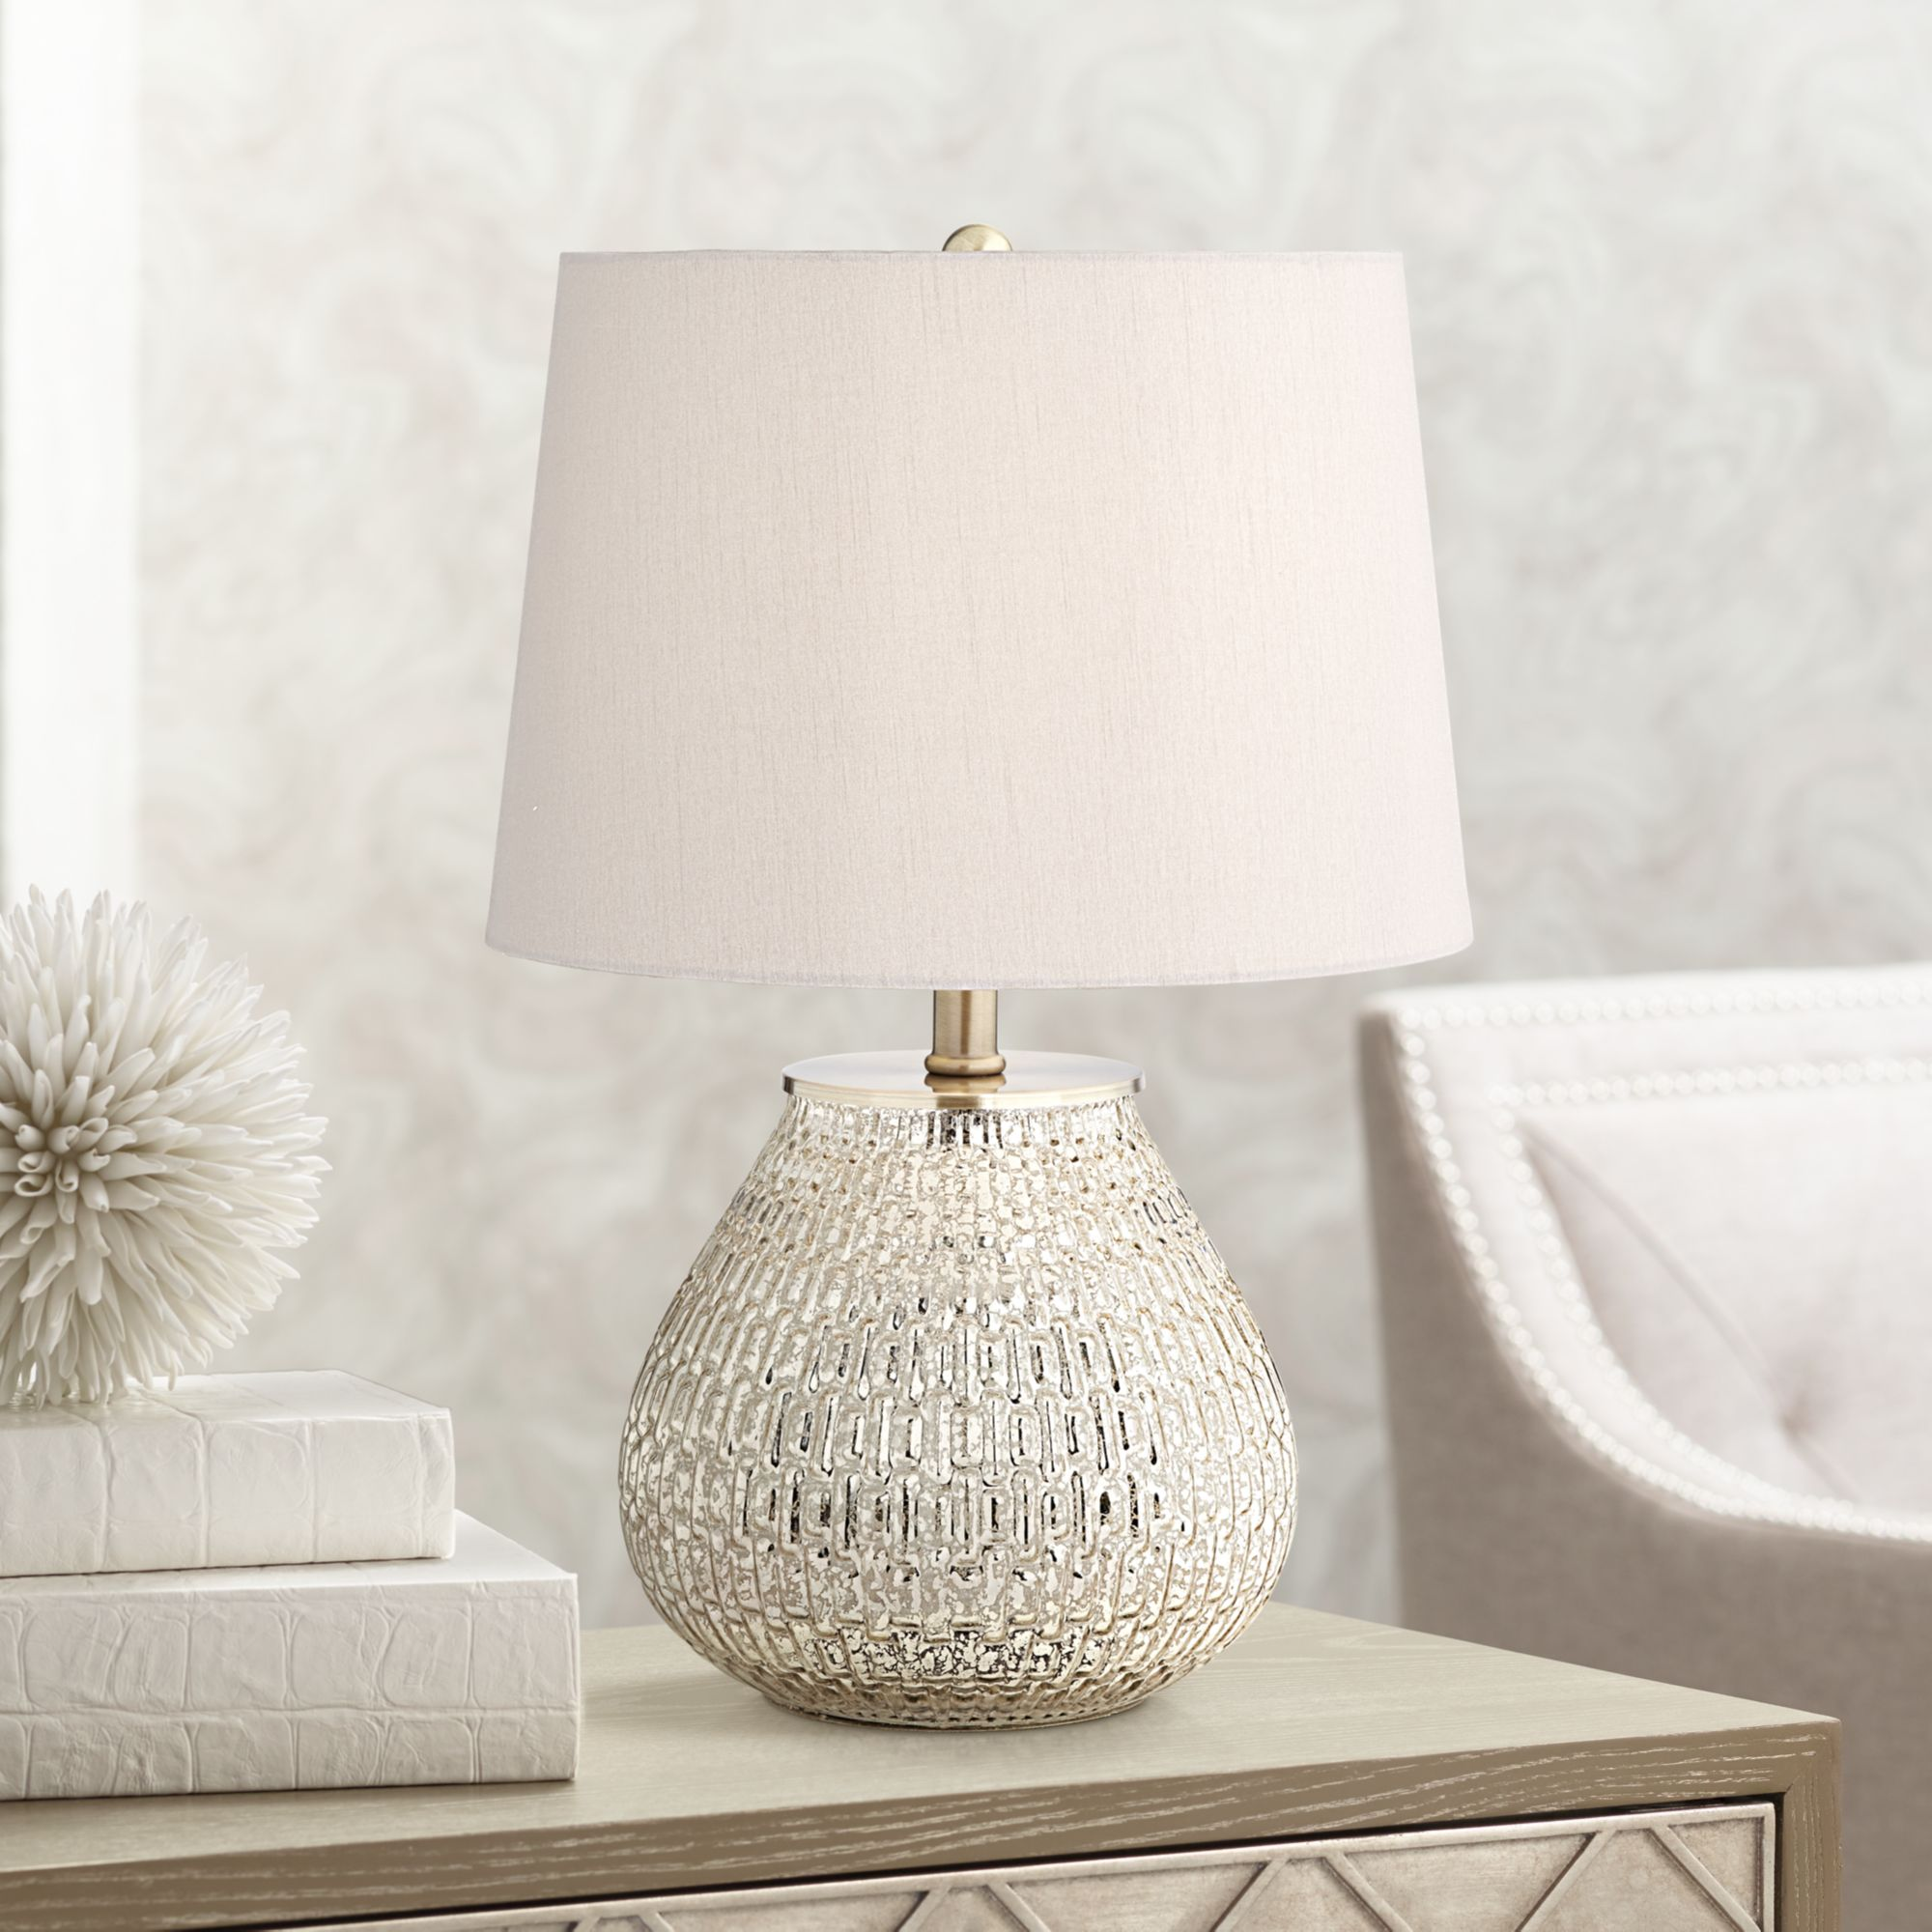 lighting cottage accent table lamp high mercury glass teardrop gray drum shade for bedroom bedside nightstand office elm flooring tiffany style shades white wood yellow retro sofa